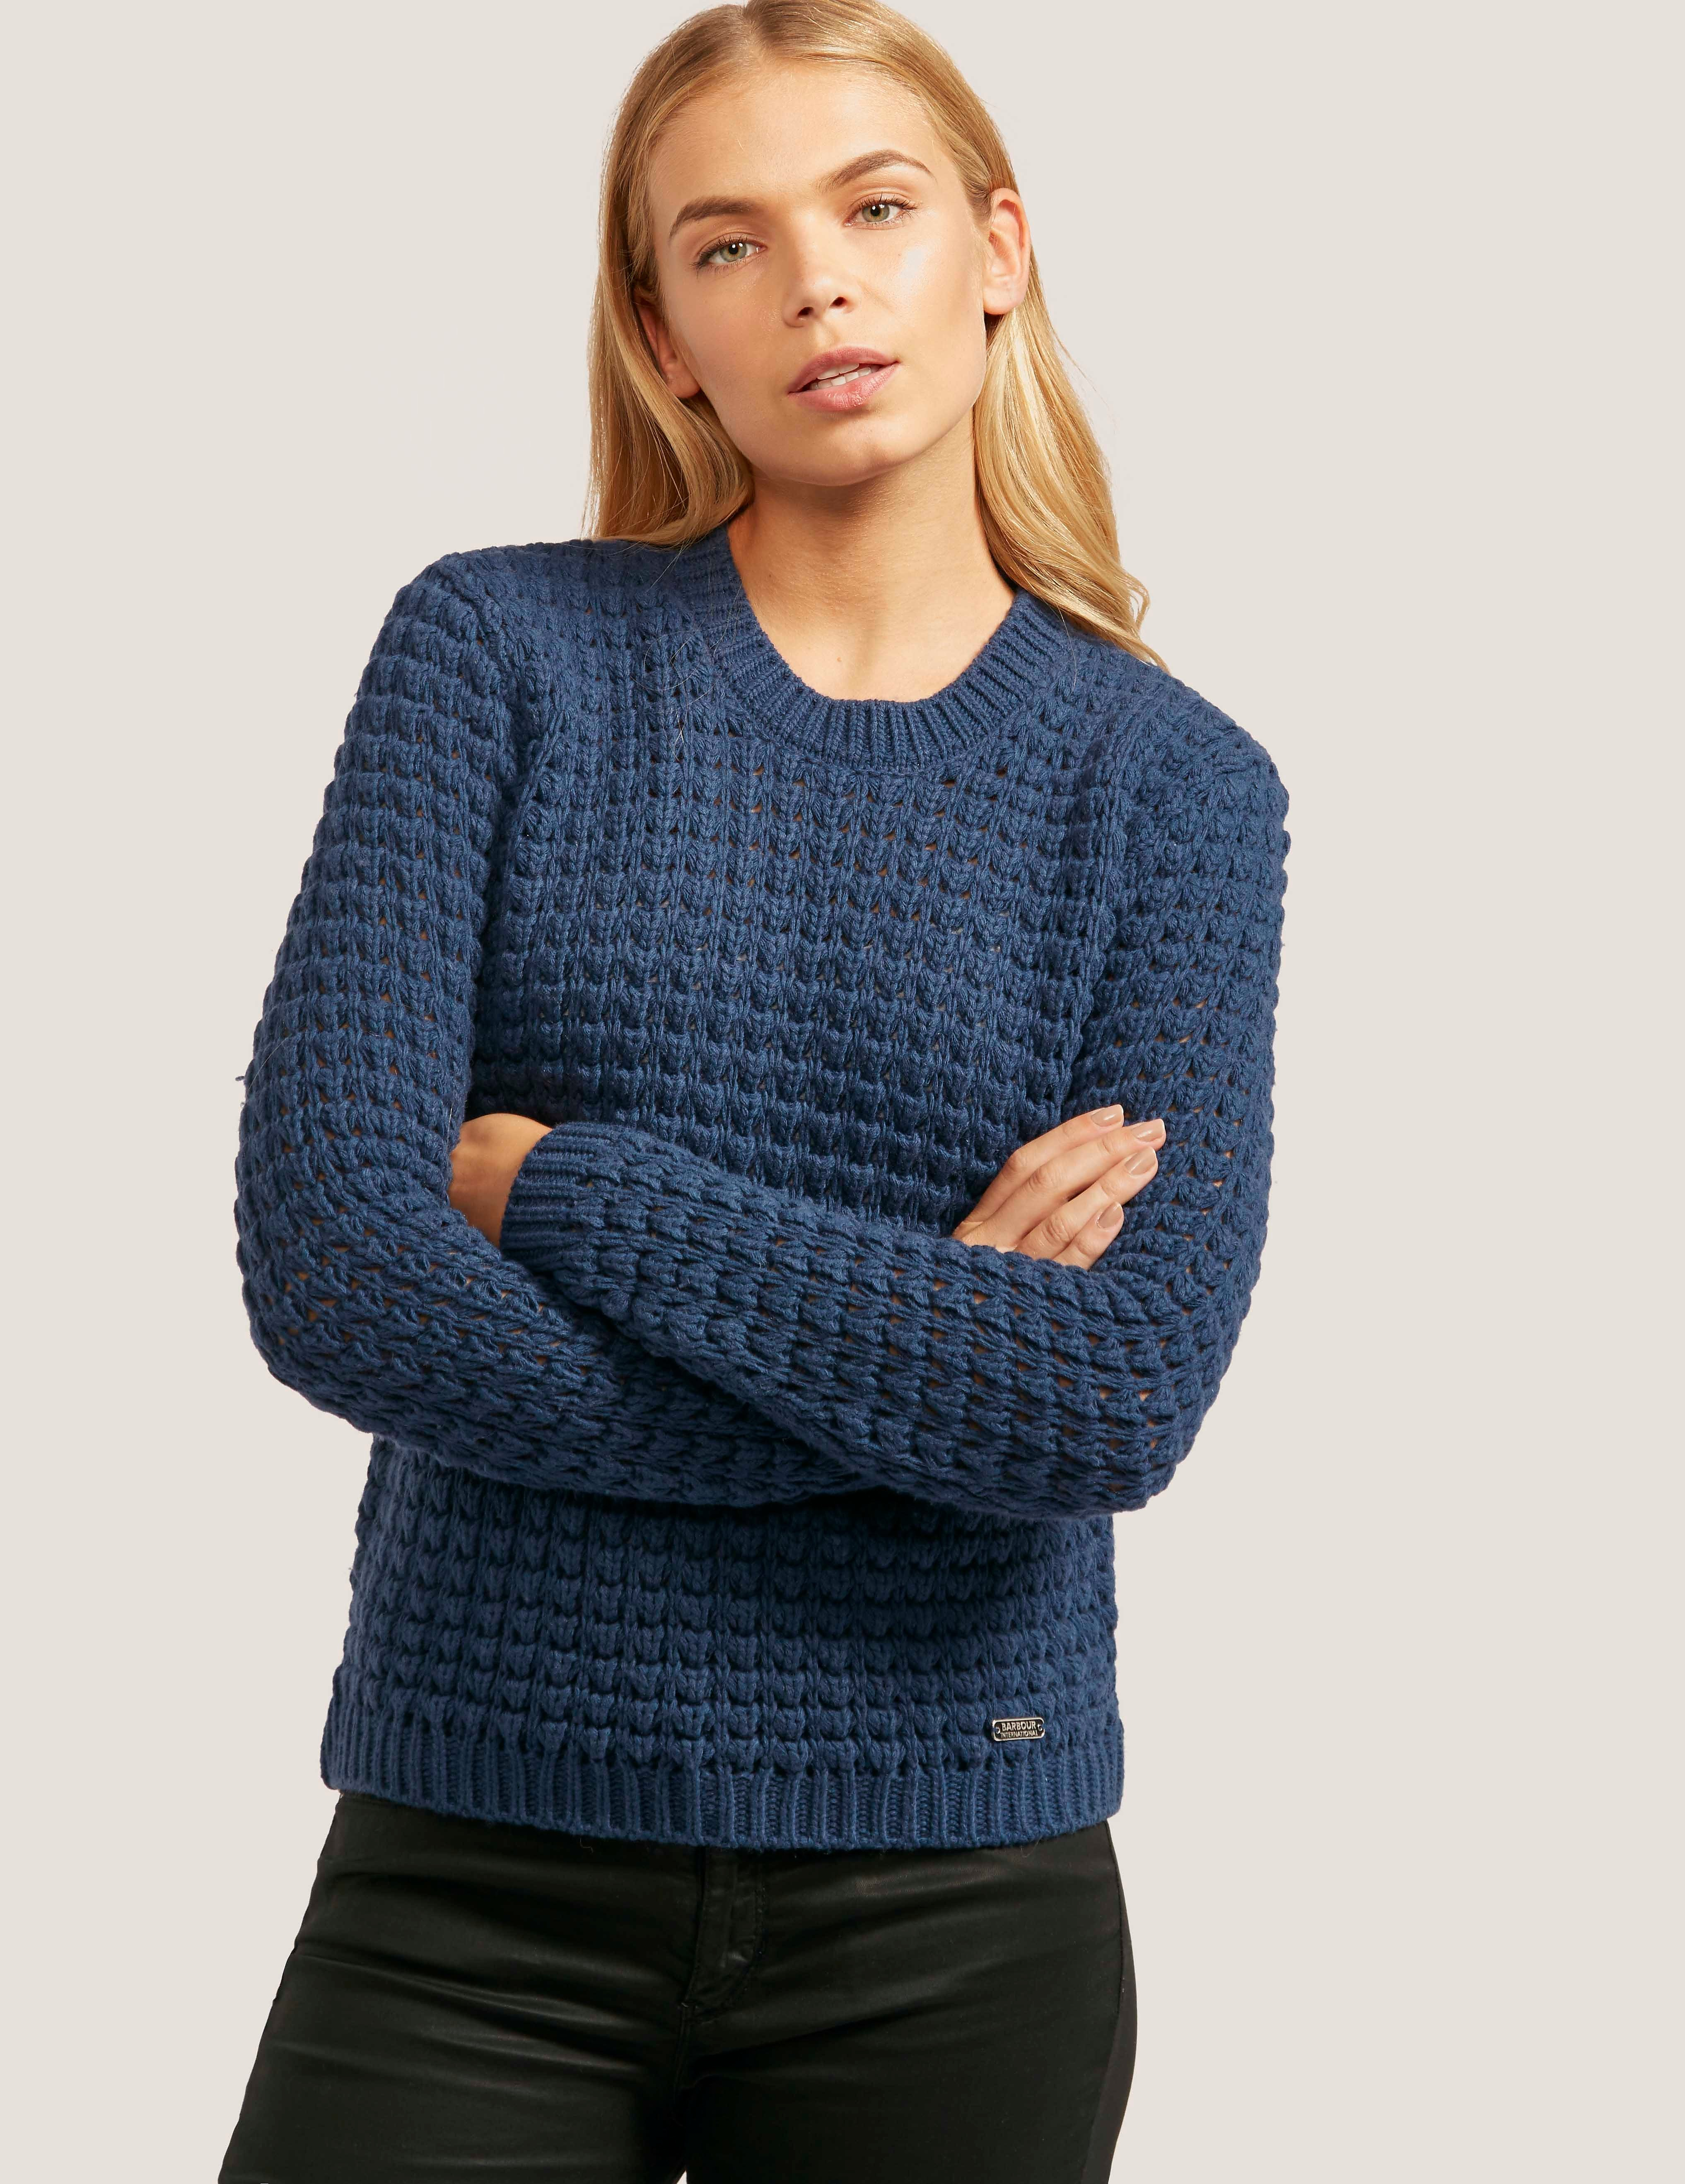 Barbour Enduro Crew Knit Sweater